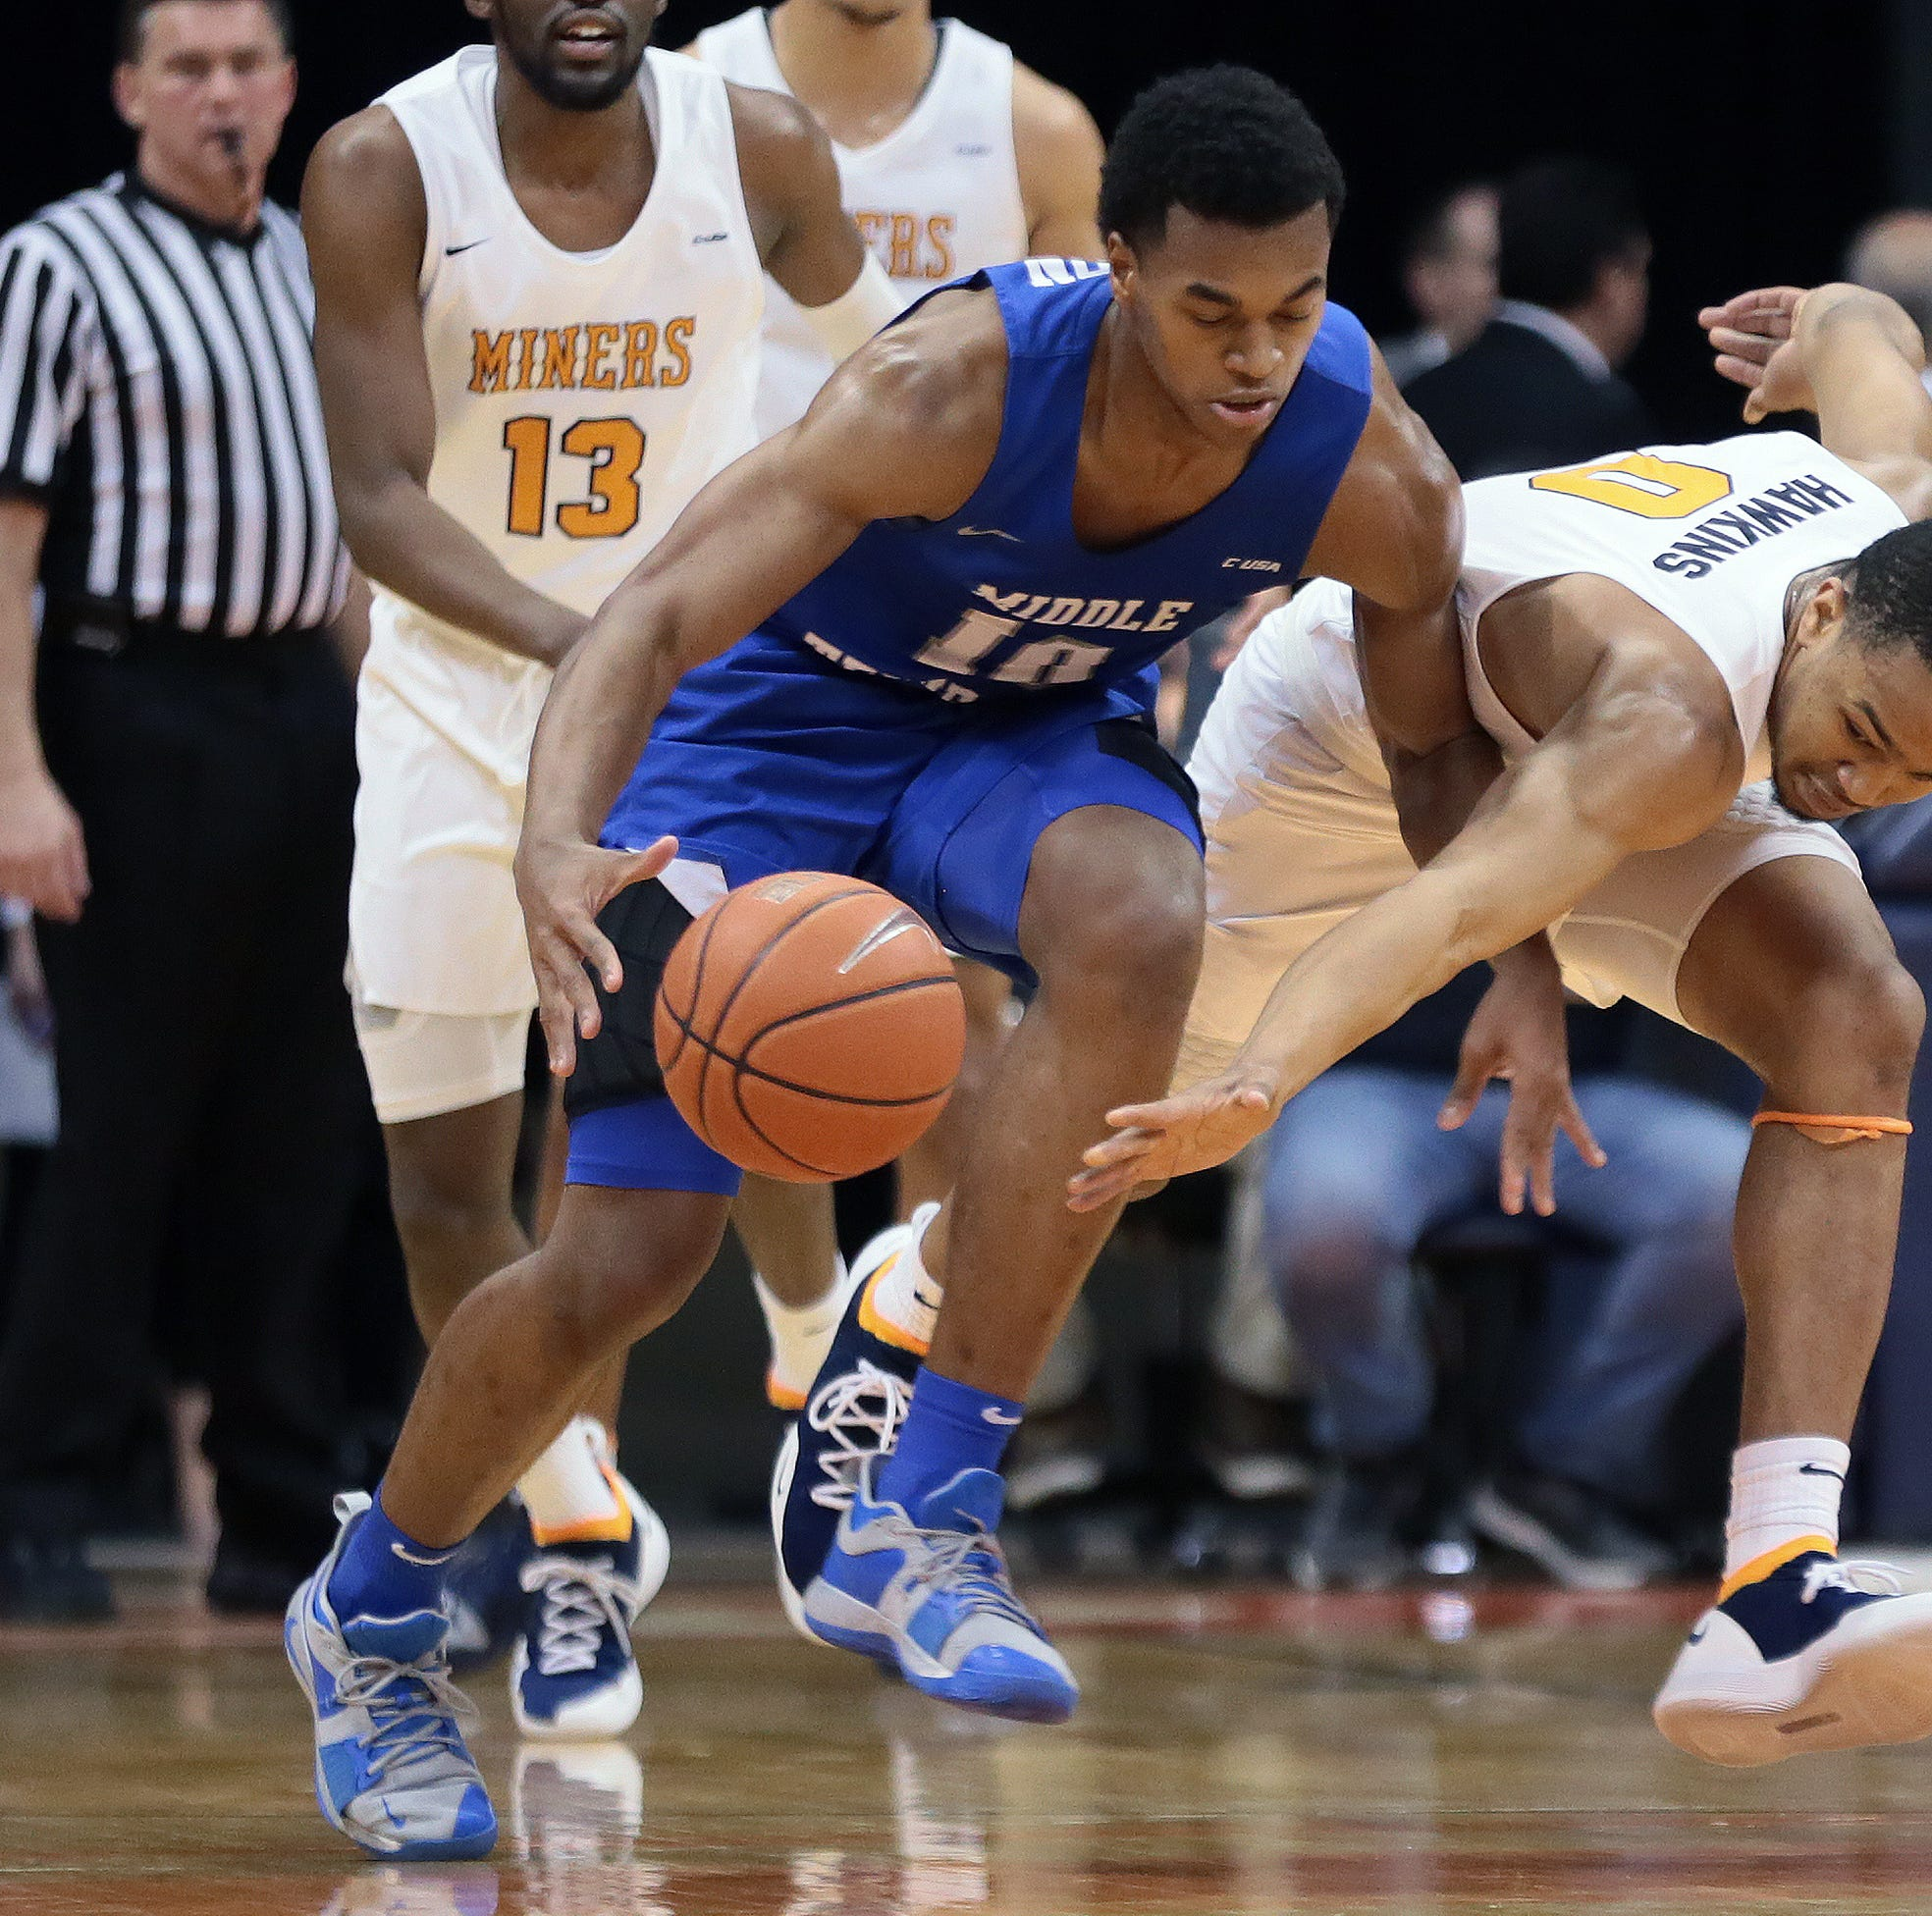 UTEP men finishes the season with just eight wins, loses at Middle Tennessee 48-47